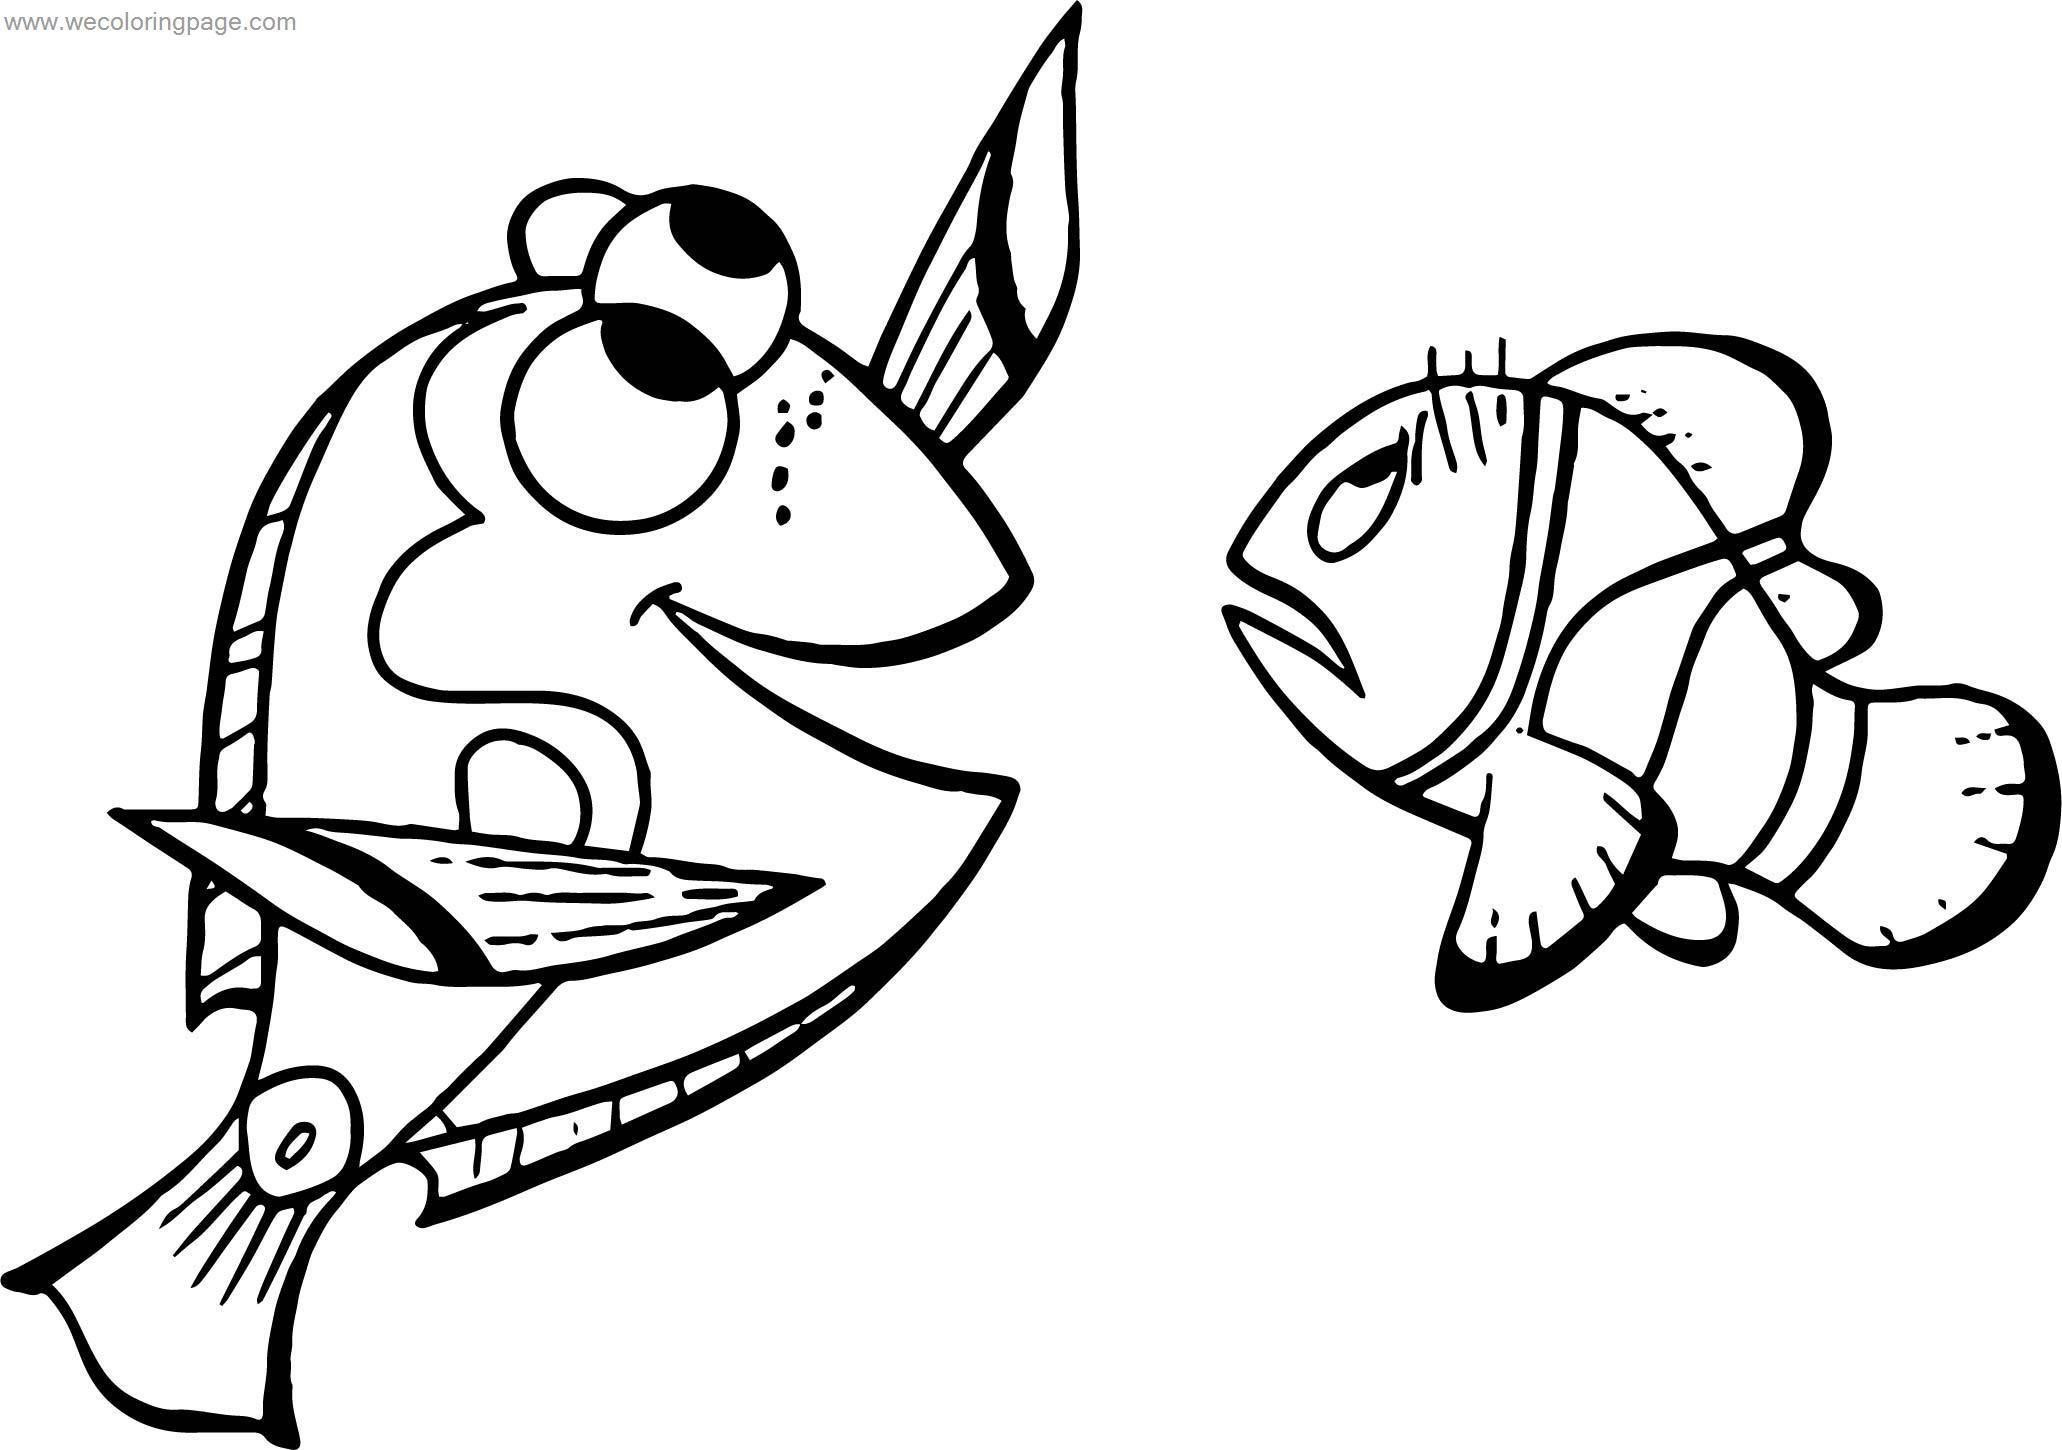 coloring nemo dory disney finding nemomarlin dory coloring pages dory coloring nemo